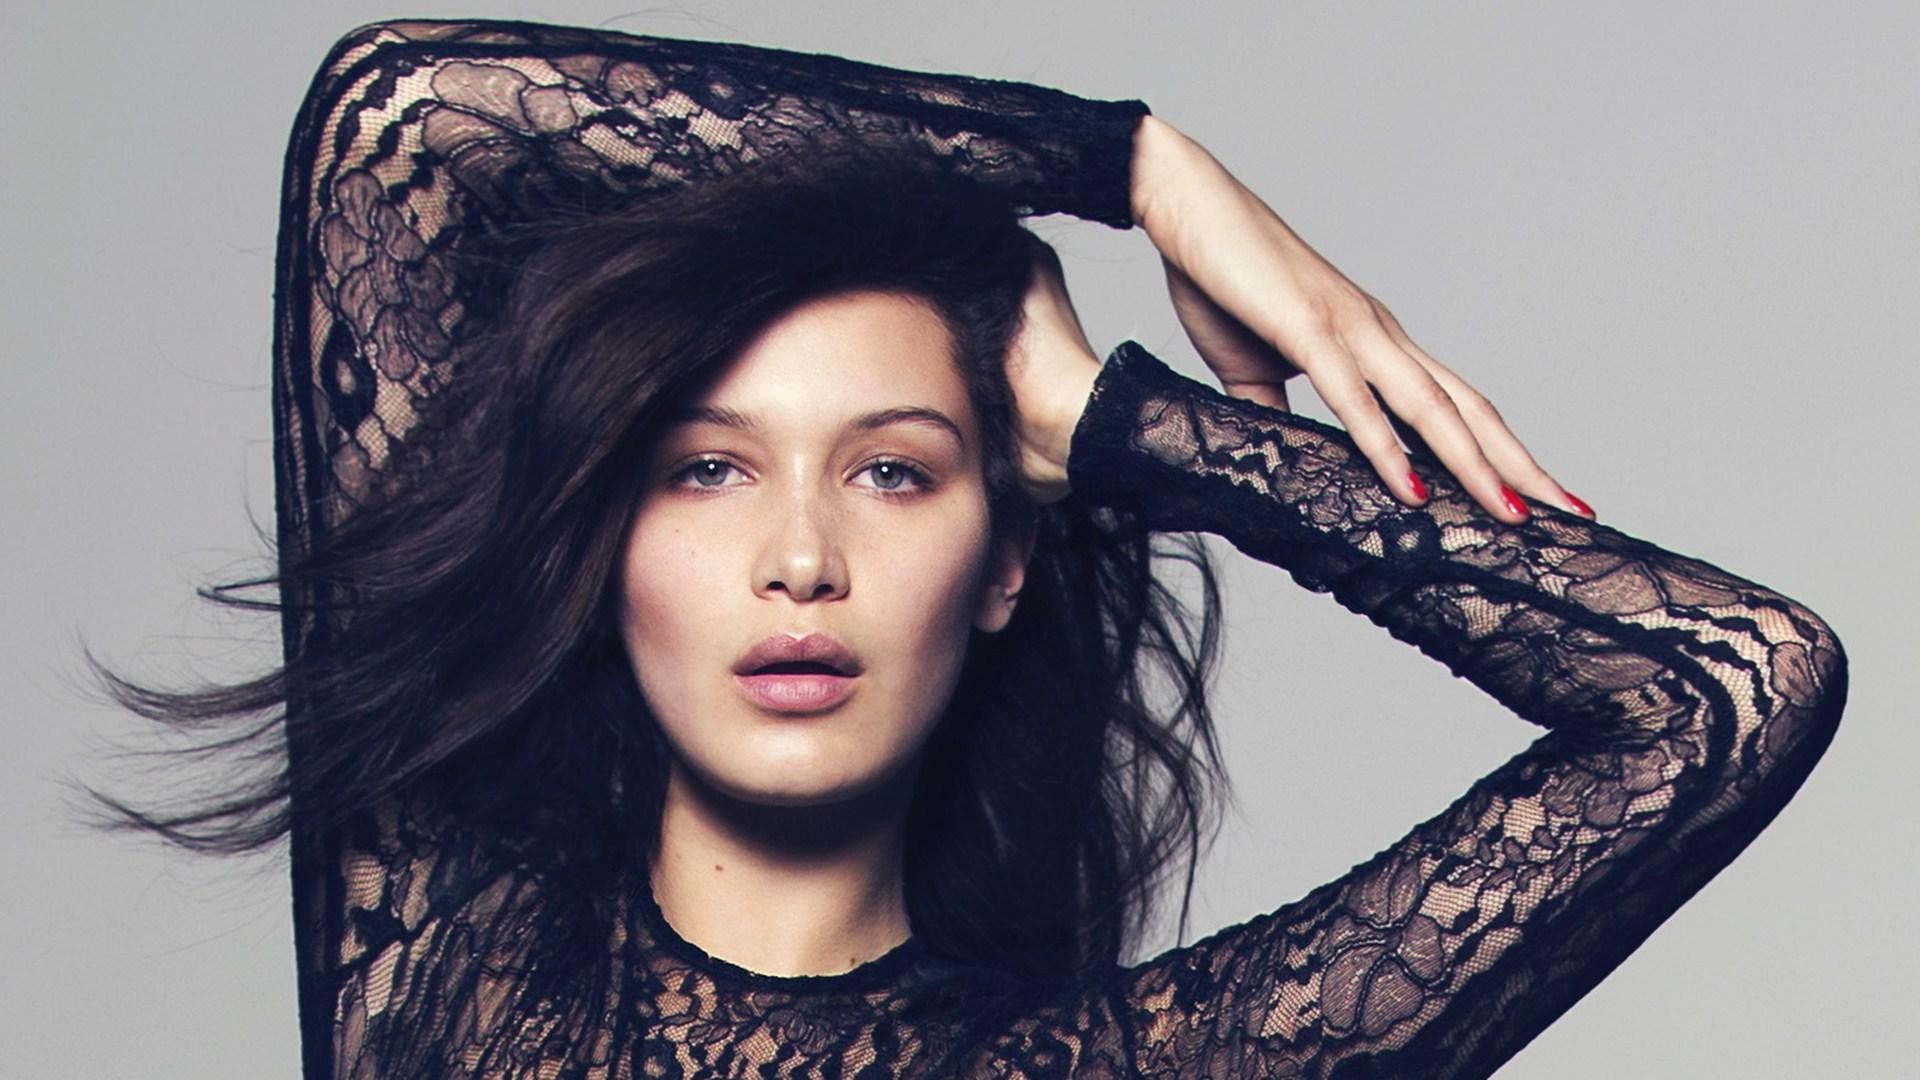 bella hadid out from gigis shadow 2016 gossip